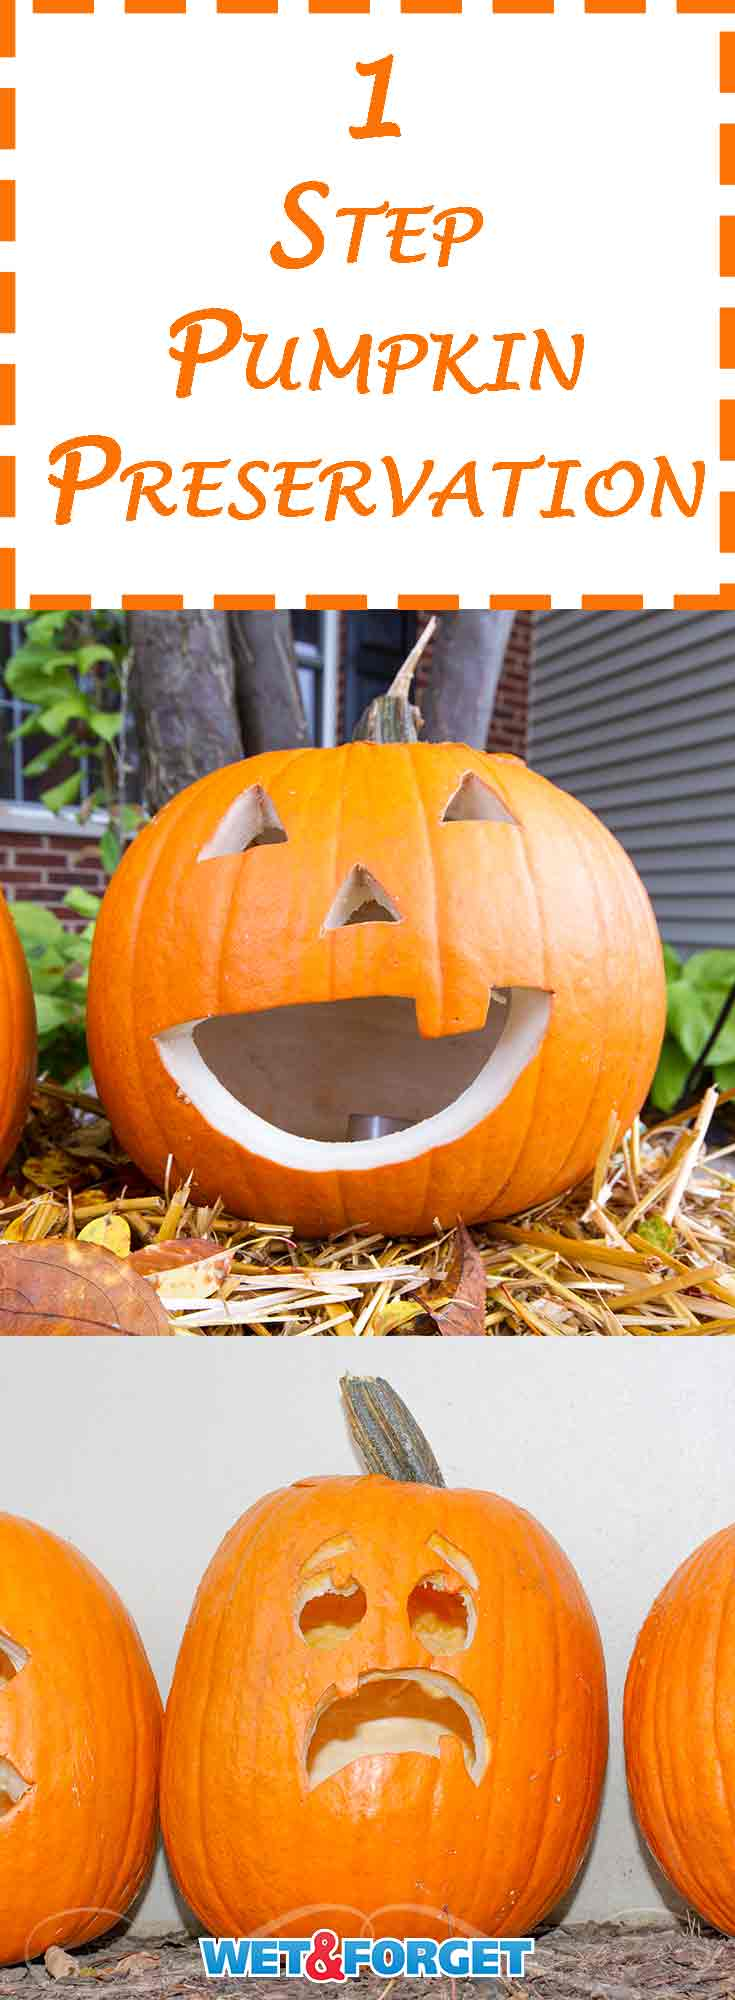 Halloween is just around the corner and it's the perfect time to start carving pumpkins. Don't let your jack-o'-lanterns fade quickly this year! Beat mold and mildew on your pumpkins with this easy 1 step method for pumpkin preservation!